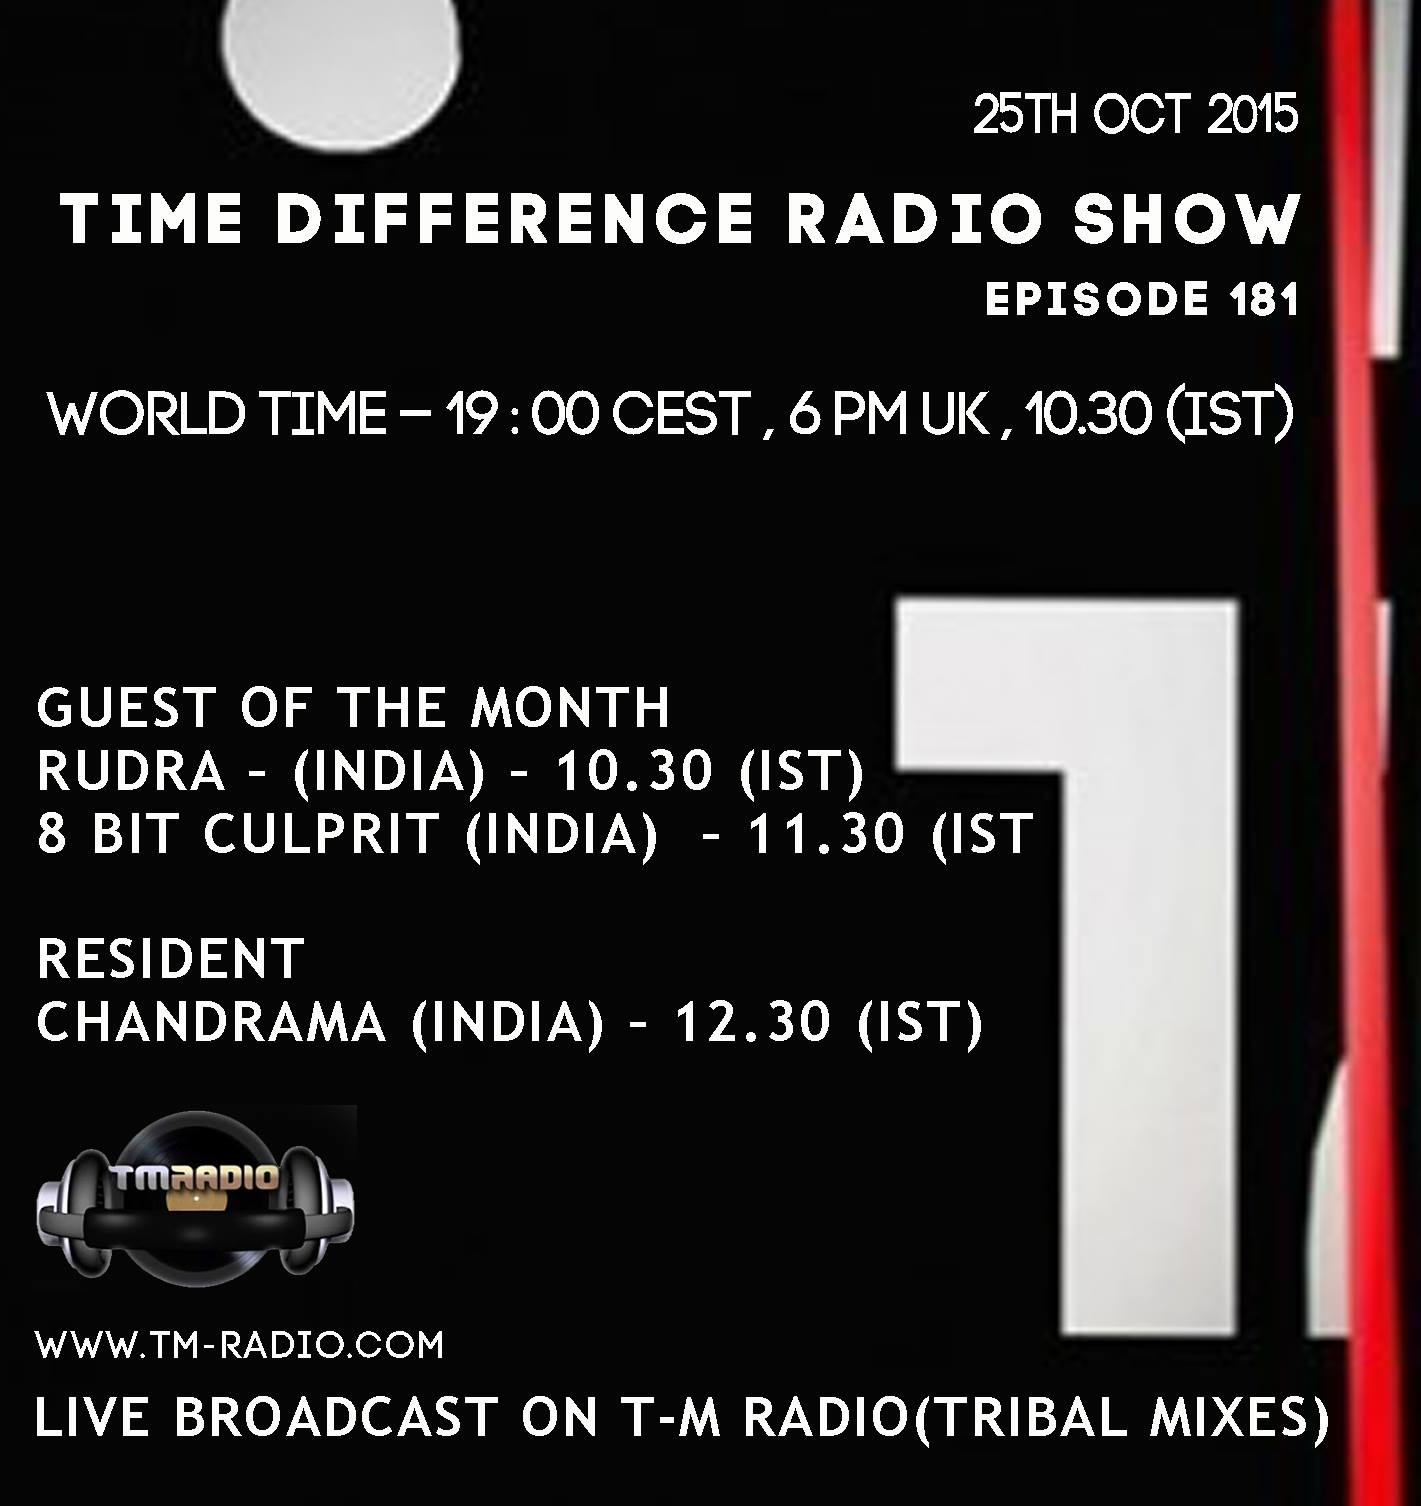 download → 8-Bit Culprit, Rudra, Chandrama - Time Difference 181 on TM Radio - 25-Oct-2015